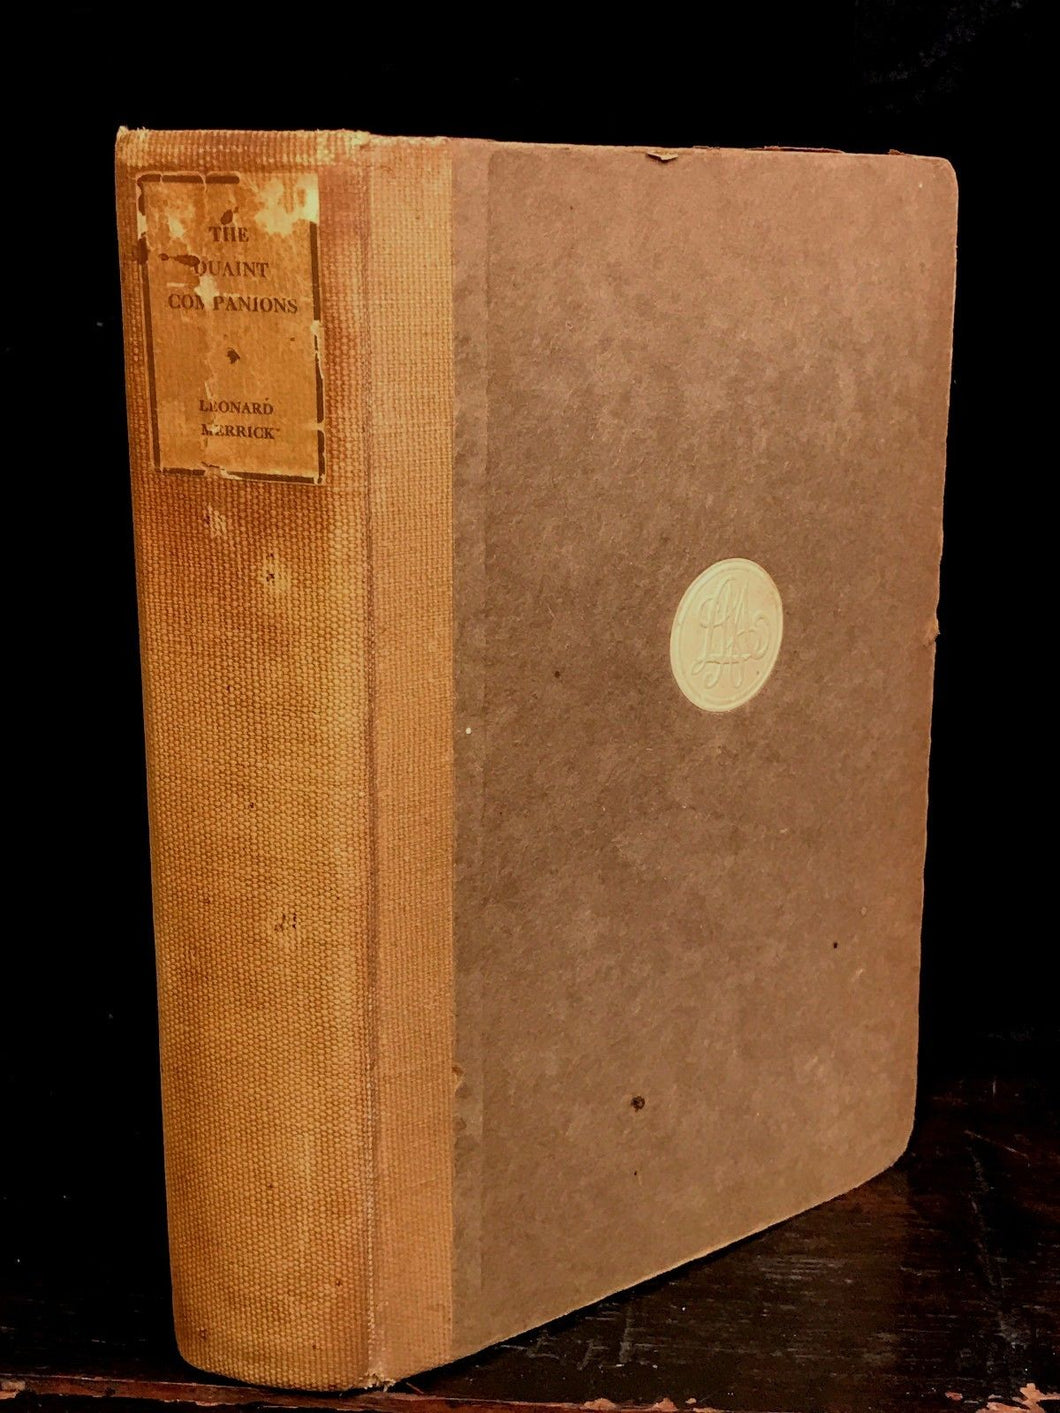 THE QUAINT COMPANIONS, LEONARD MERRICK ~ Limited Ed. of 1500, 1924 ~ H.G. Wells